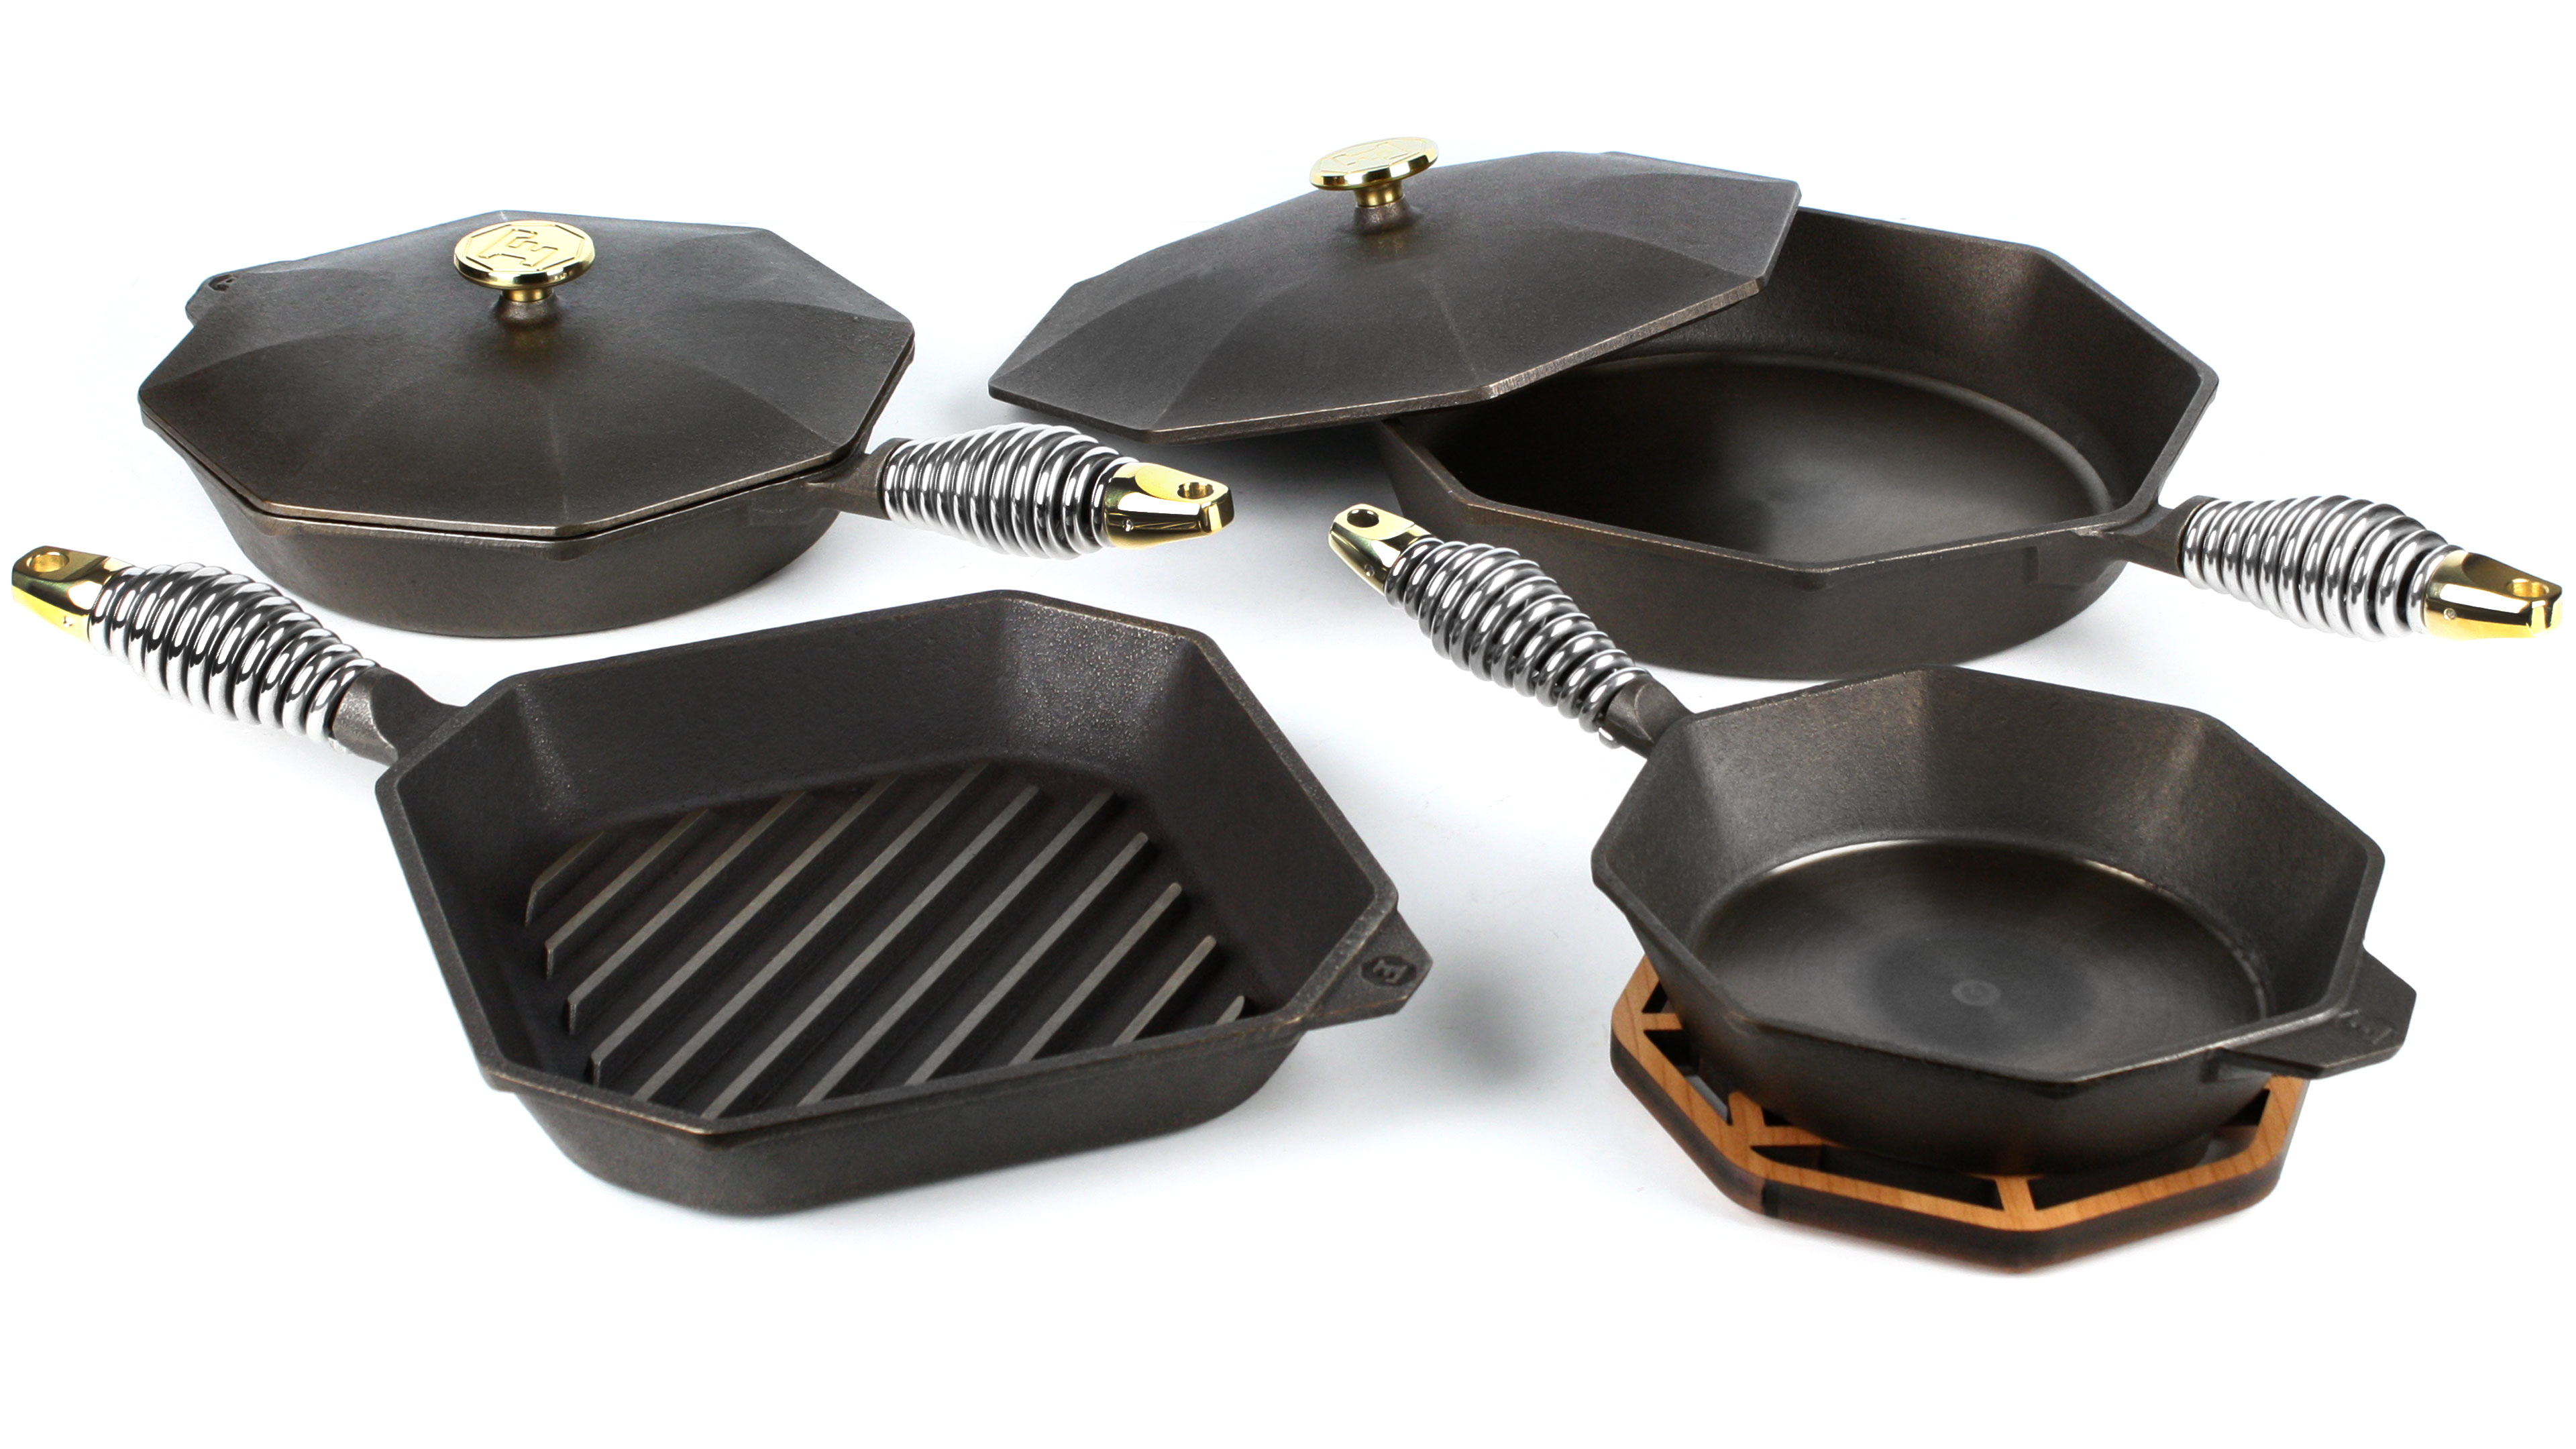 Finex Cast Iron Cookware Set 7 Piece Cutlery And More